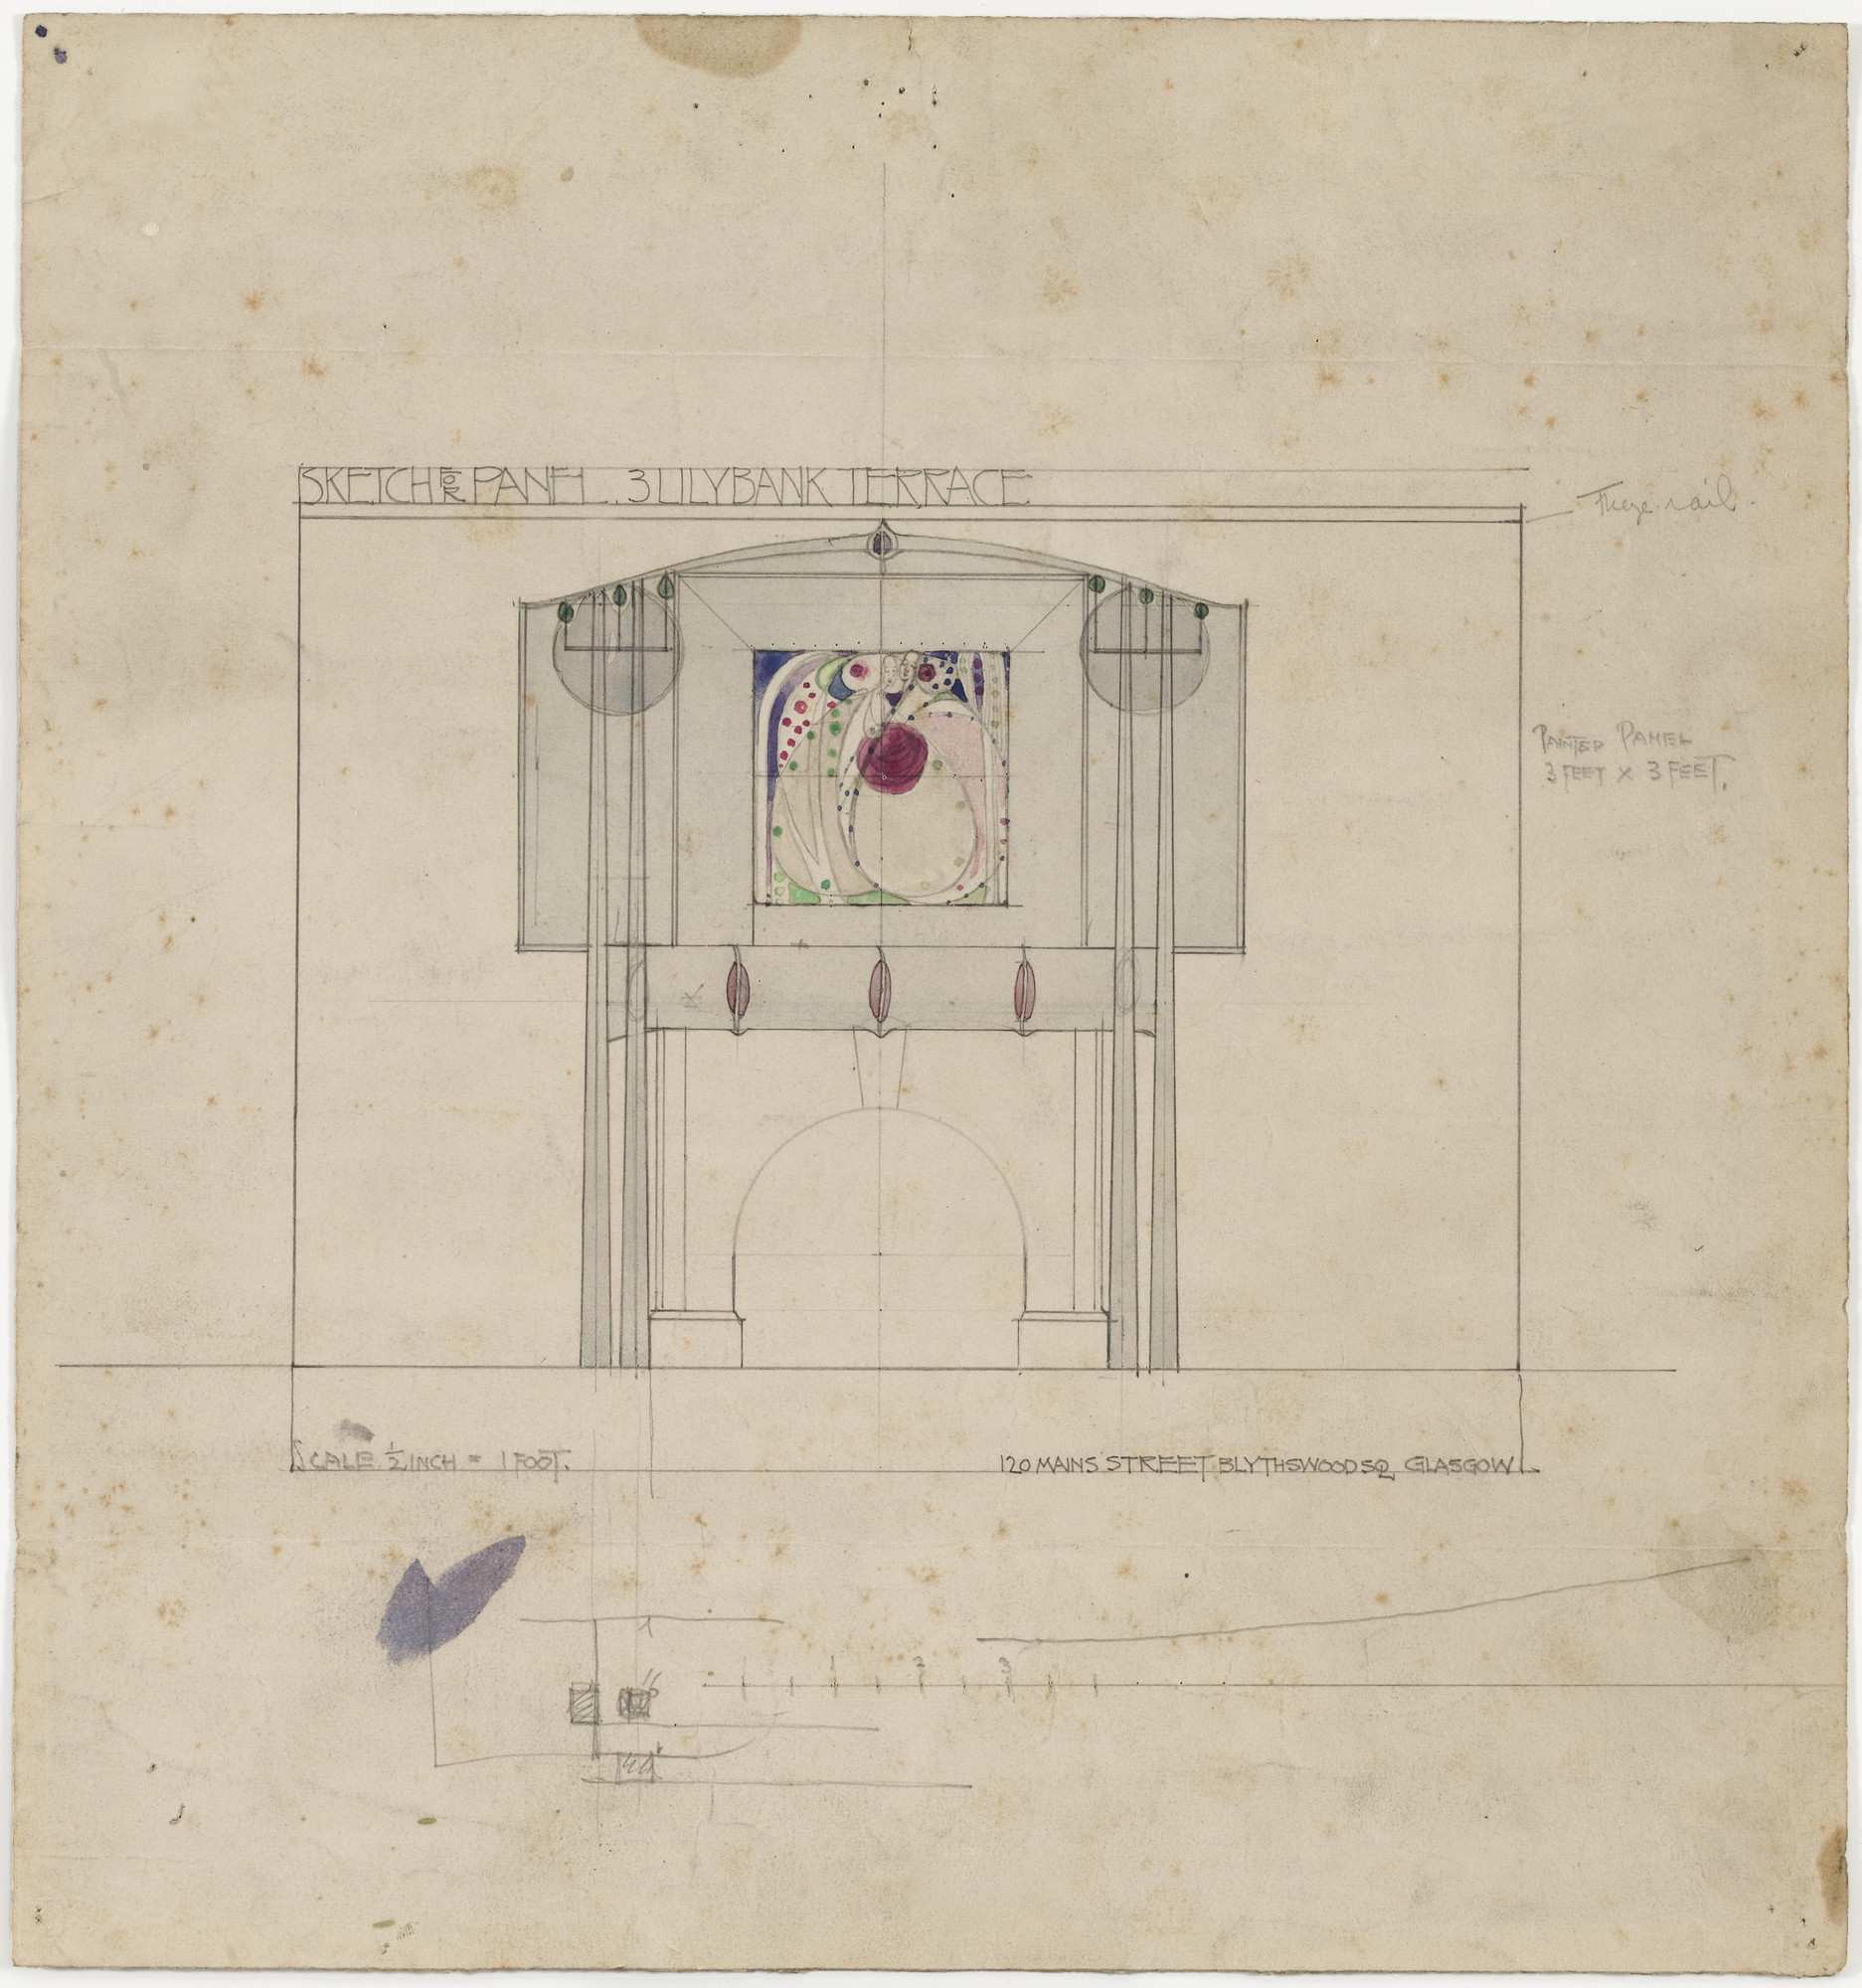 Charles Rennie Mackintosh, Margaret Macdonald. Design for Mantelpiece Incorporating Painted Panel, 3 Lilybank Terrace, Glasgow, Scotland. 1901